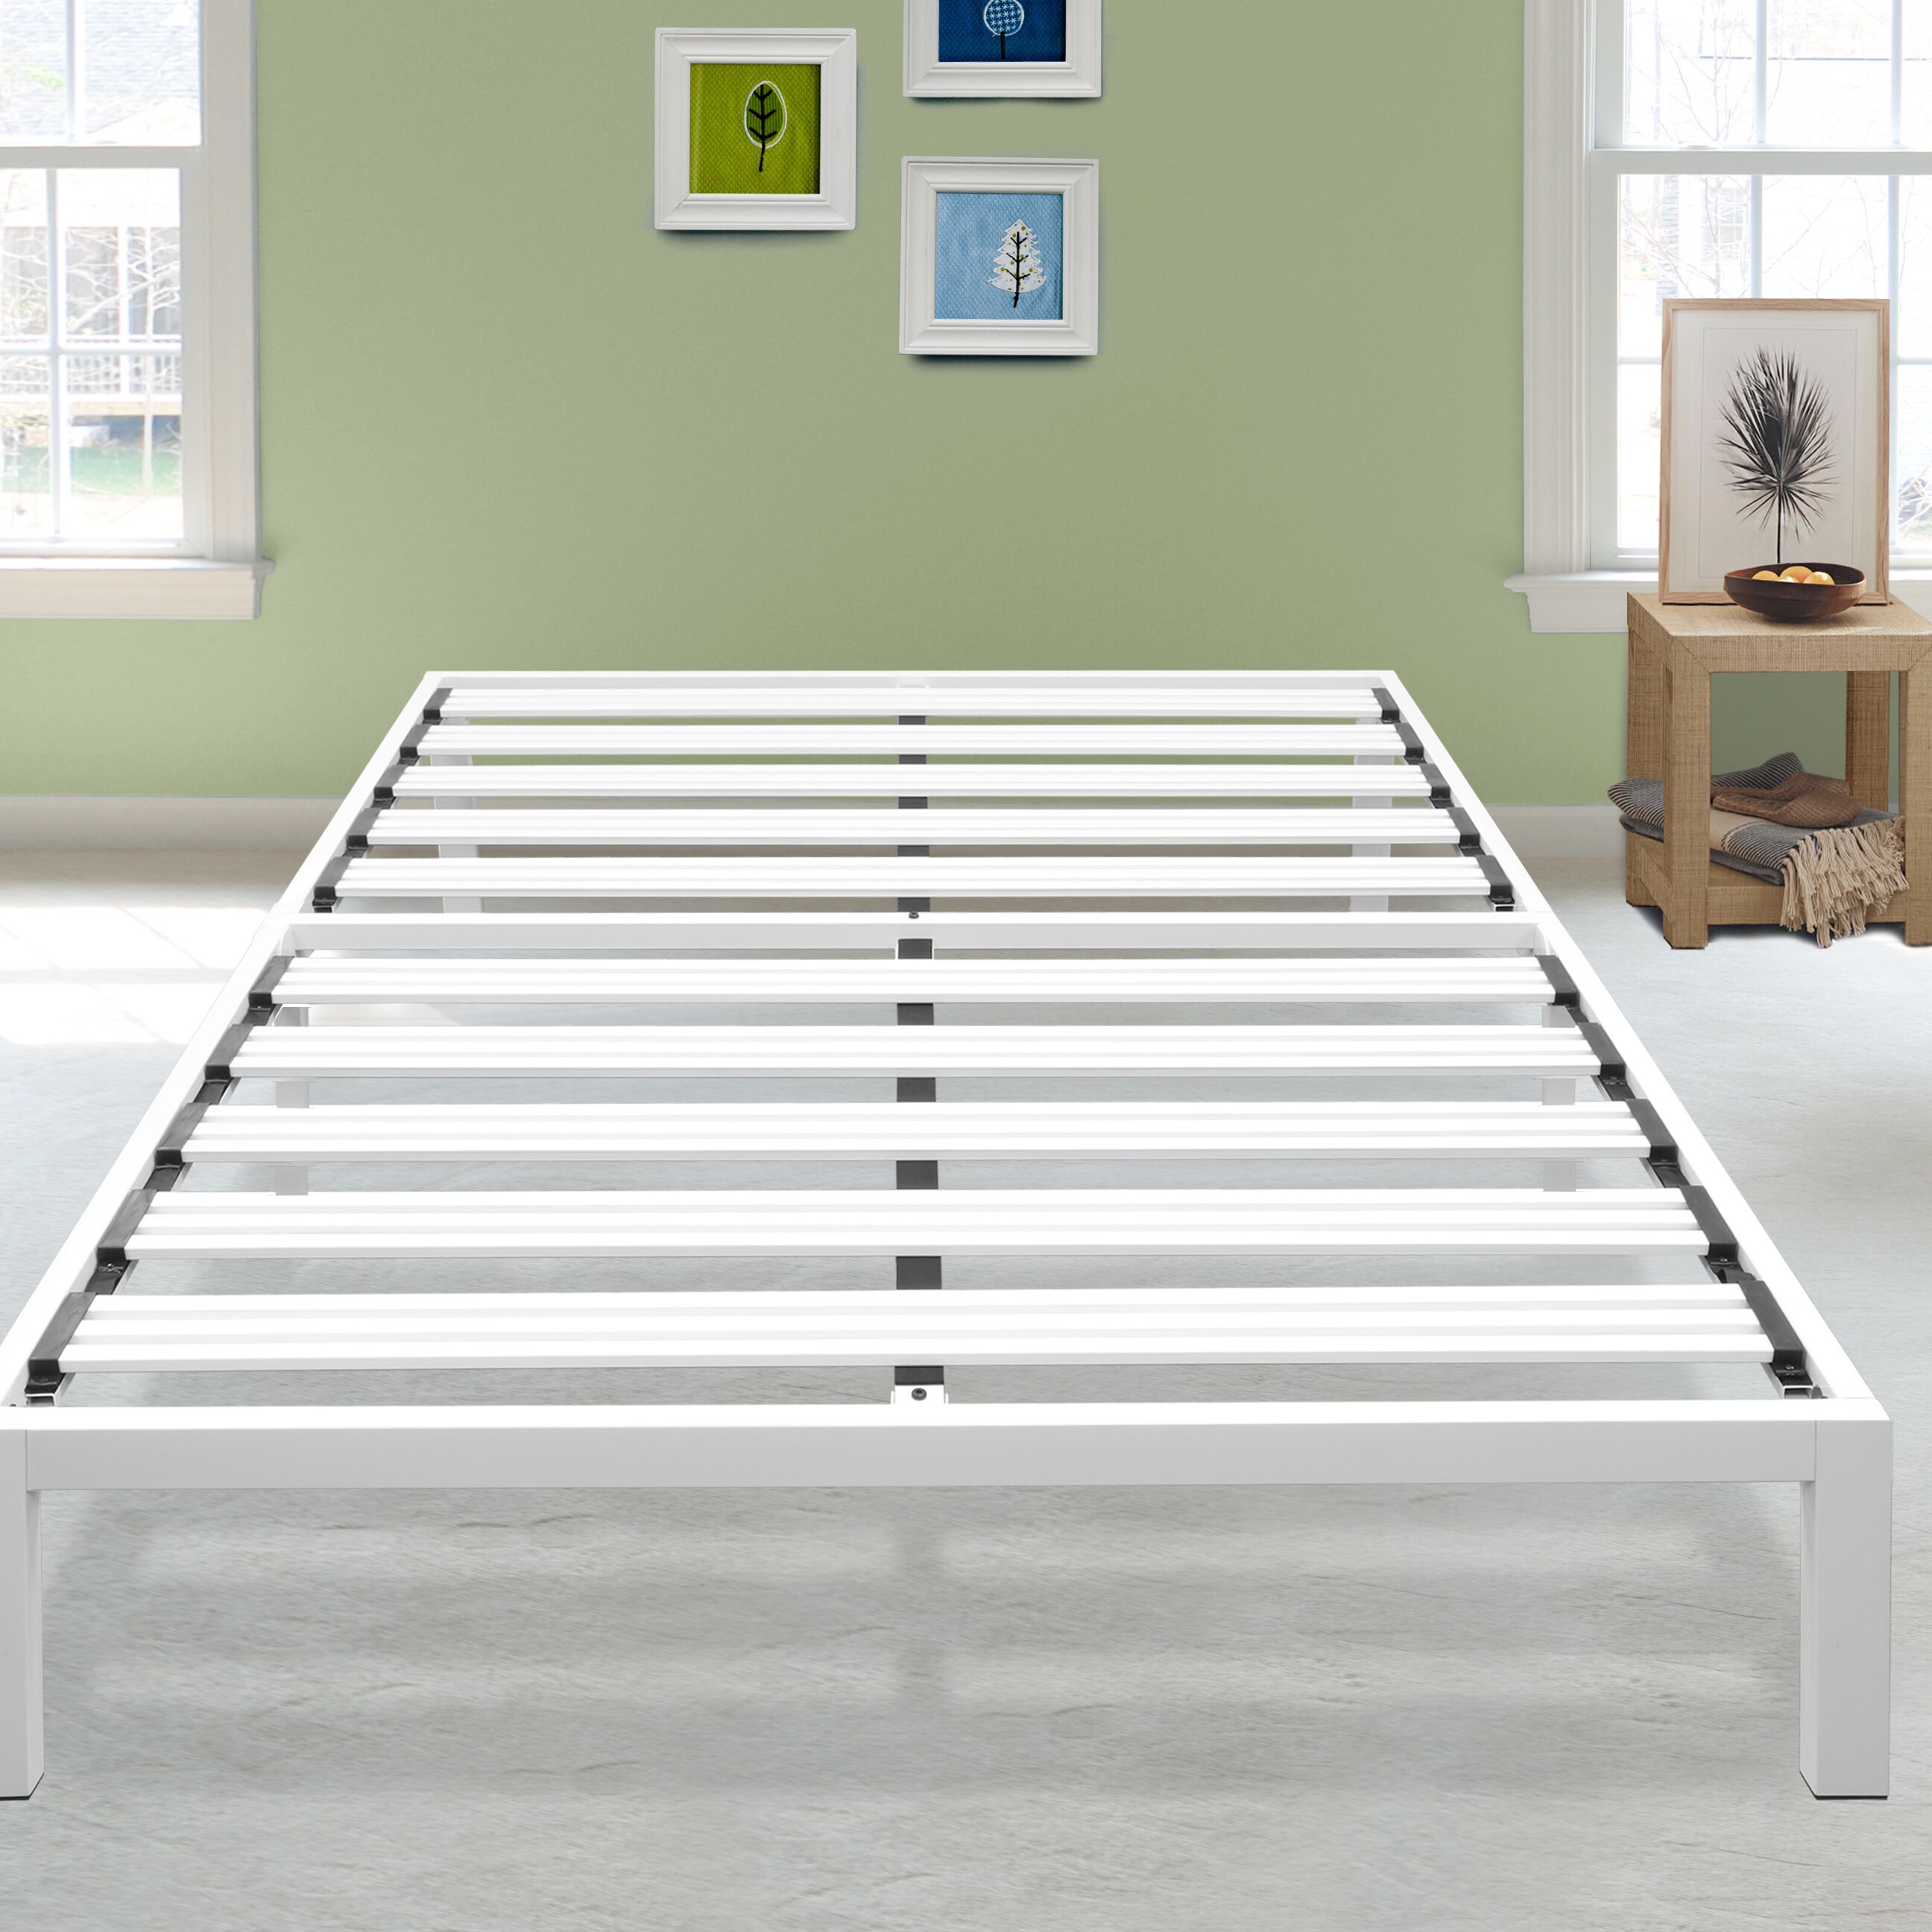 divine modern ikea good bed twin mattress magnetic floating plans frame